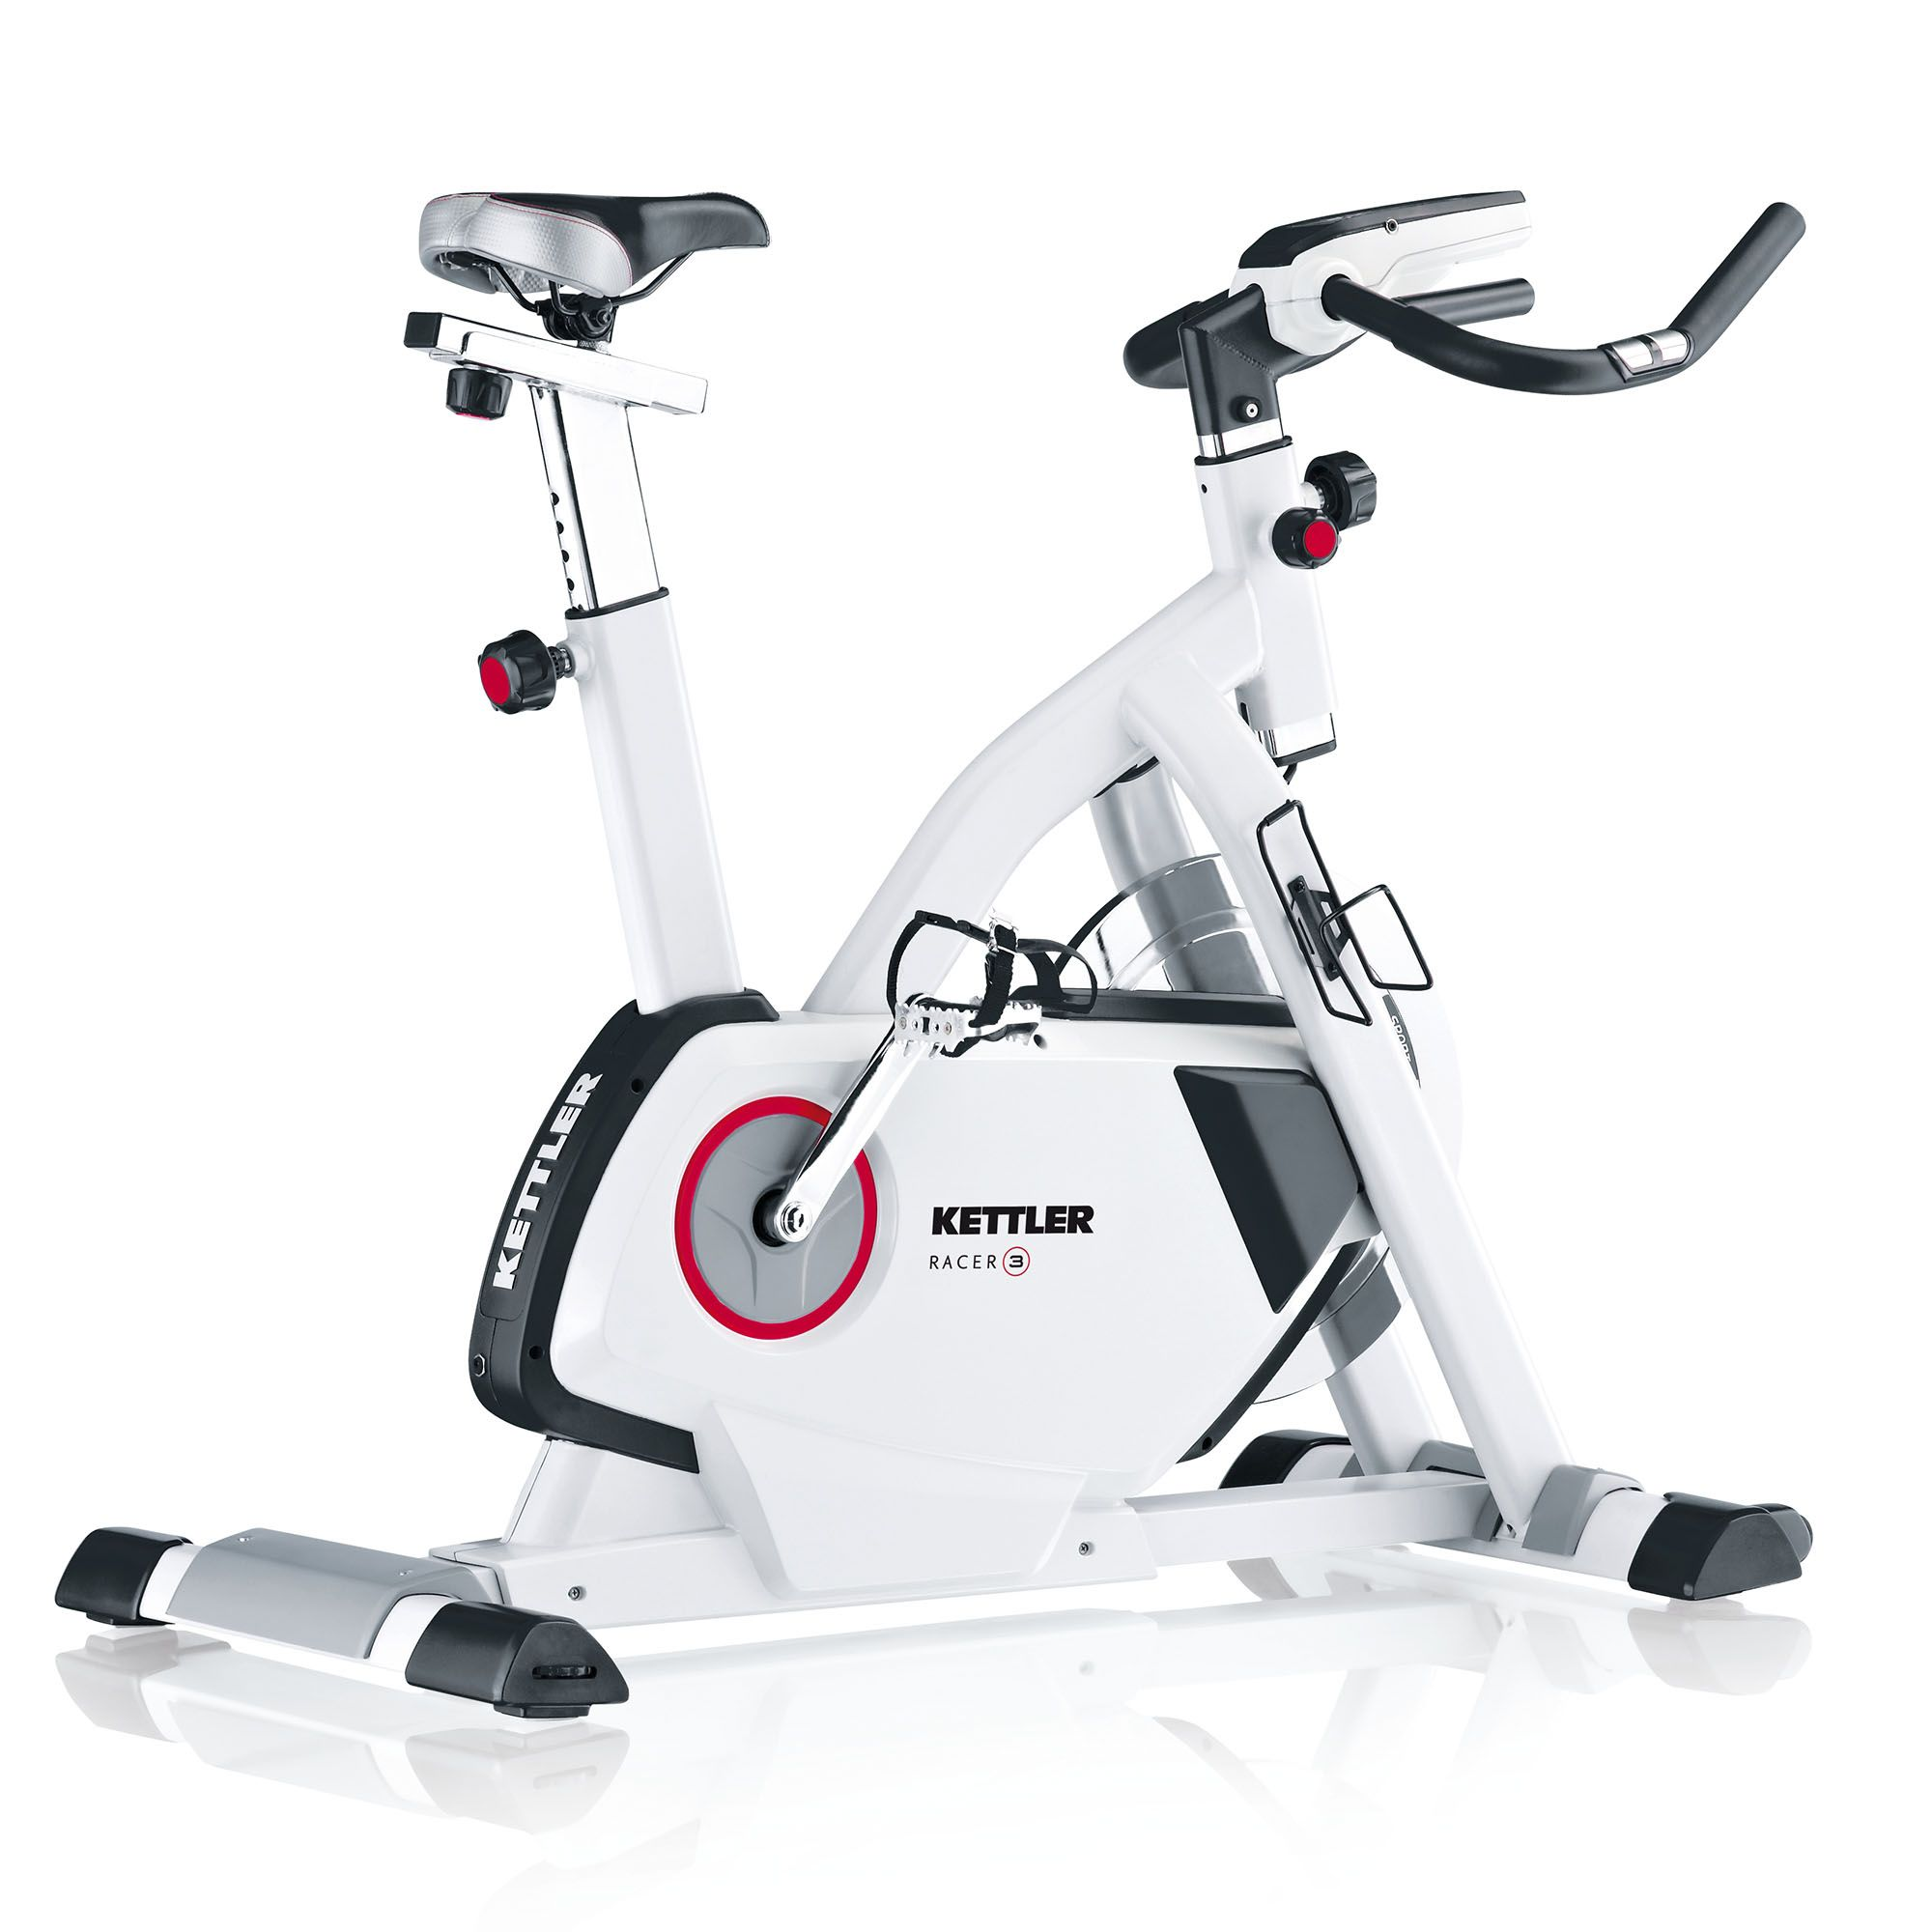 Kettler Fitness Kettler Racer 3 Indoor Cycle